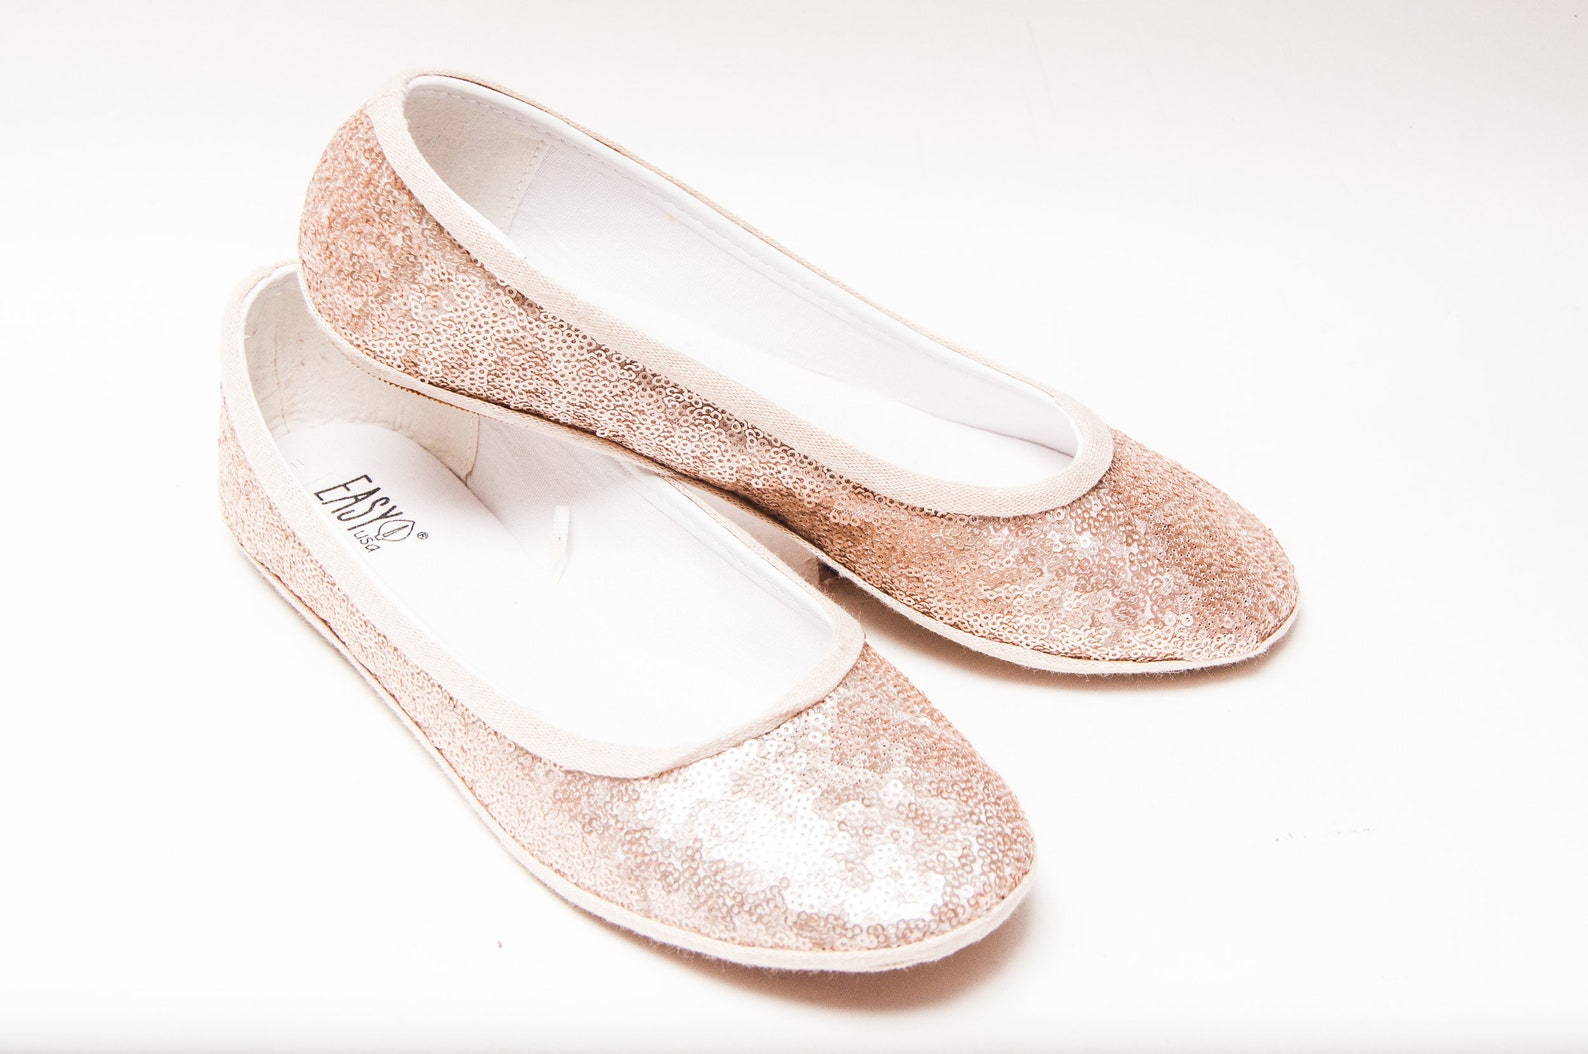 ready 2 ship - size 11 sequin starlight champagne gold ballet flat slipper custom shoes